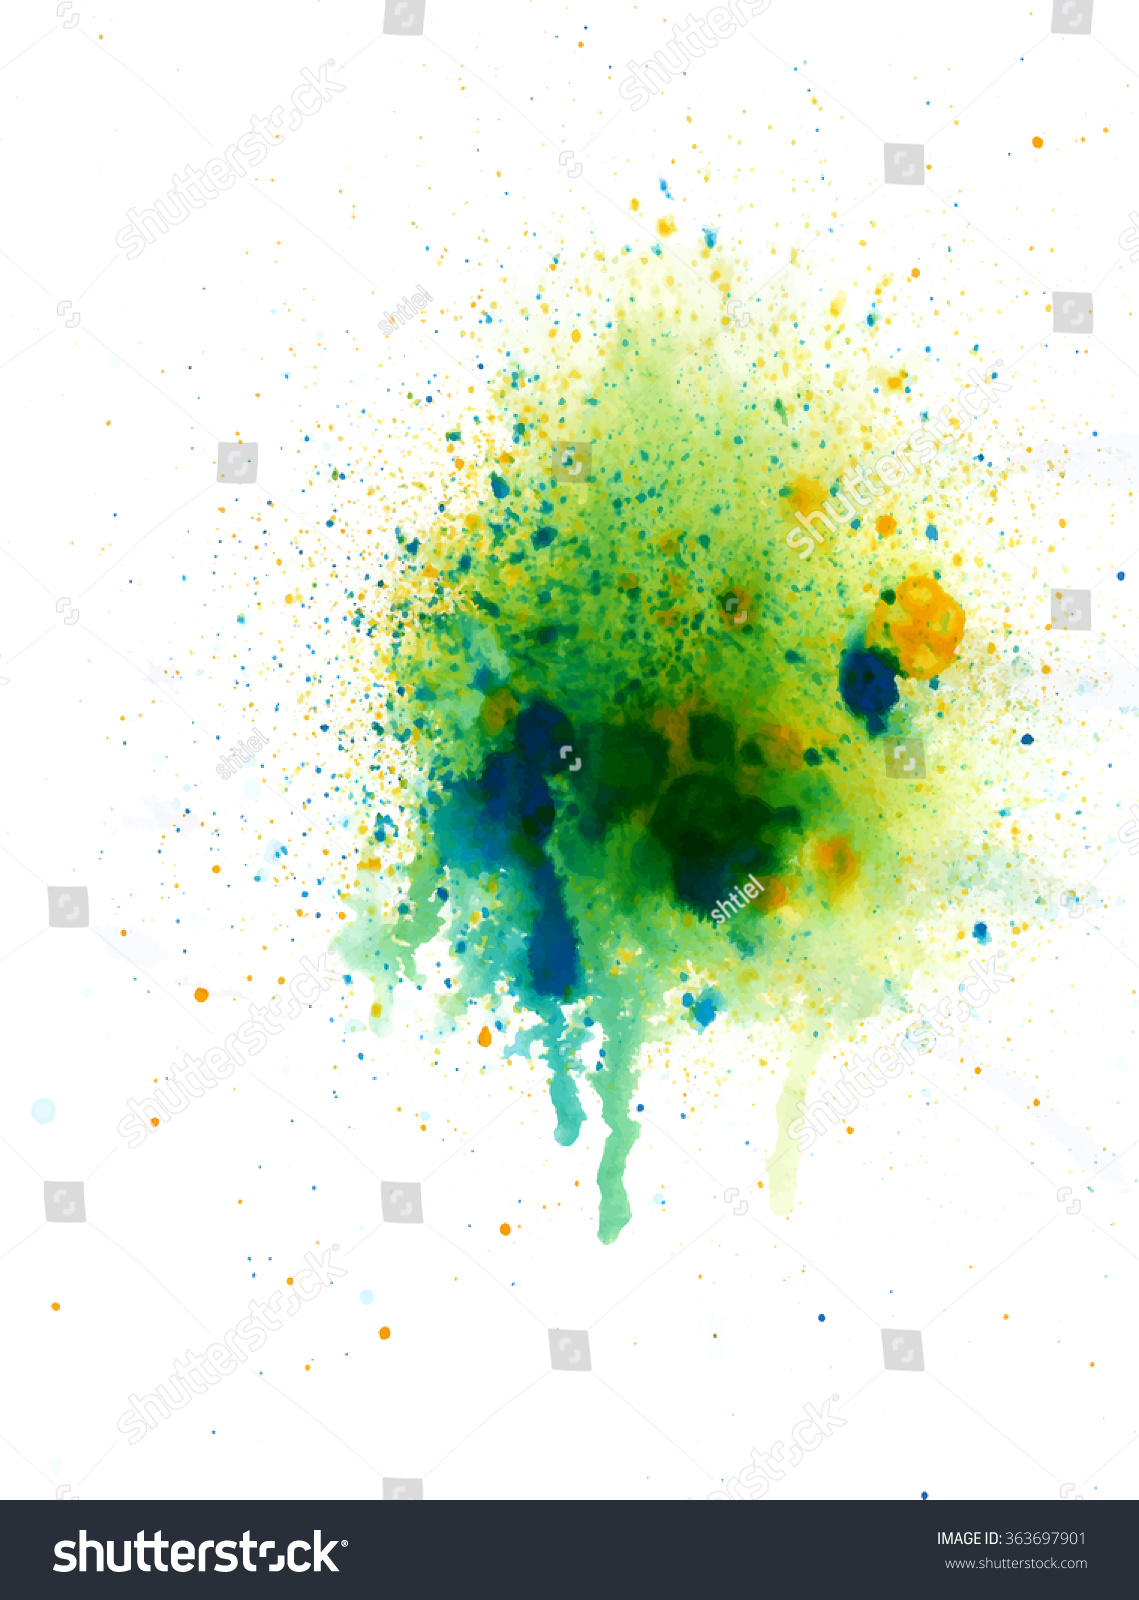 Abstract Watercolor Palette Blue Yellow Green Stock Vector (Royalty ...